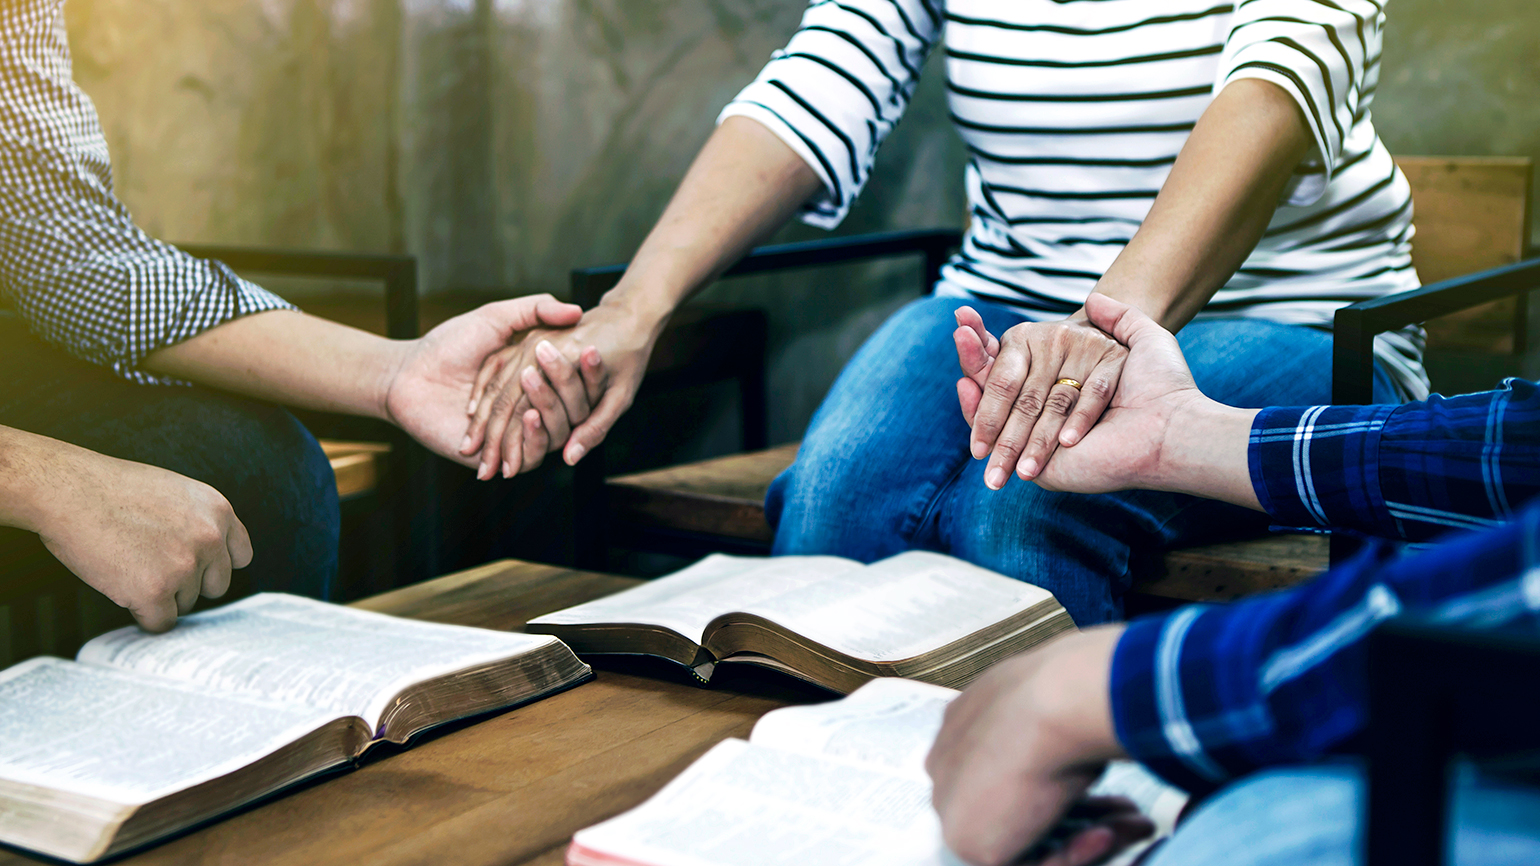 A group of worshippers clasp hands in prayer